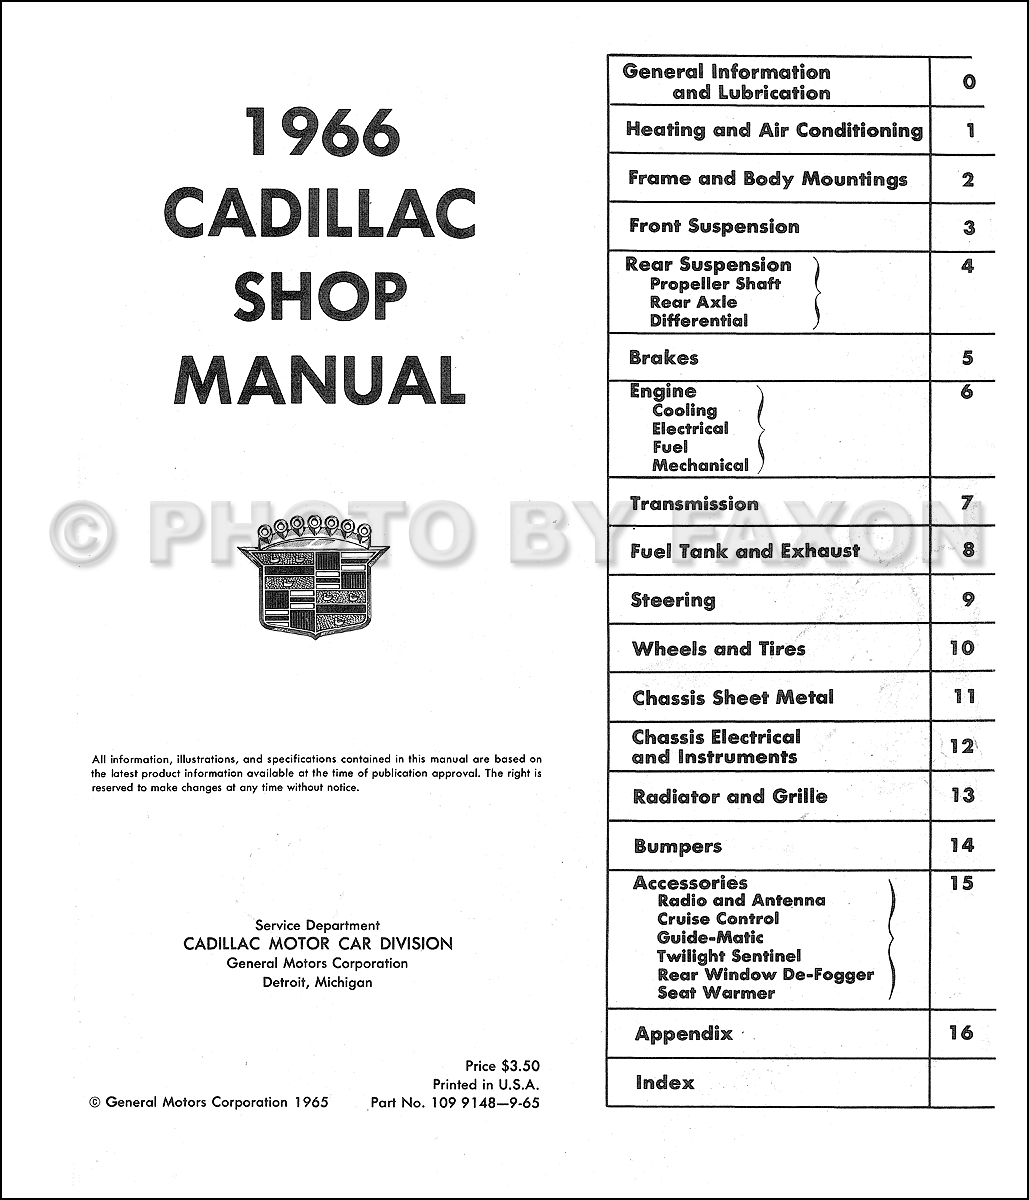 1970 Cadillac Sedan Deville Wiring Diagram 42 Diagrams 1966 Repair Shop Manual Reprint 1966cadillacfalrrm